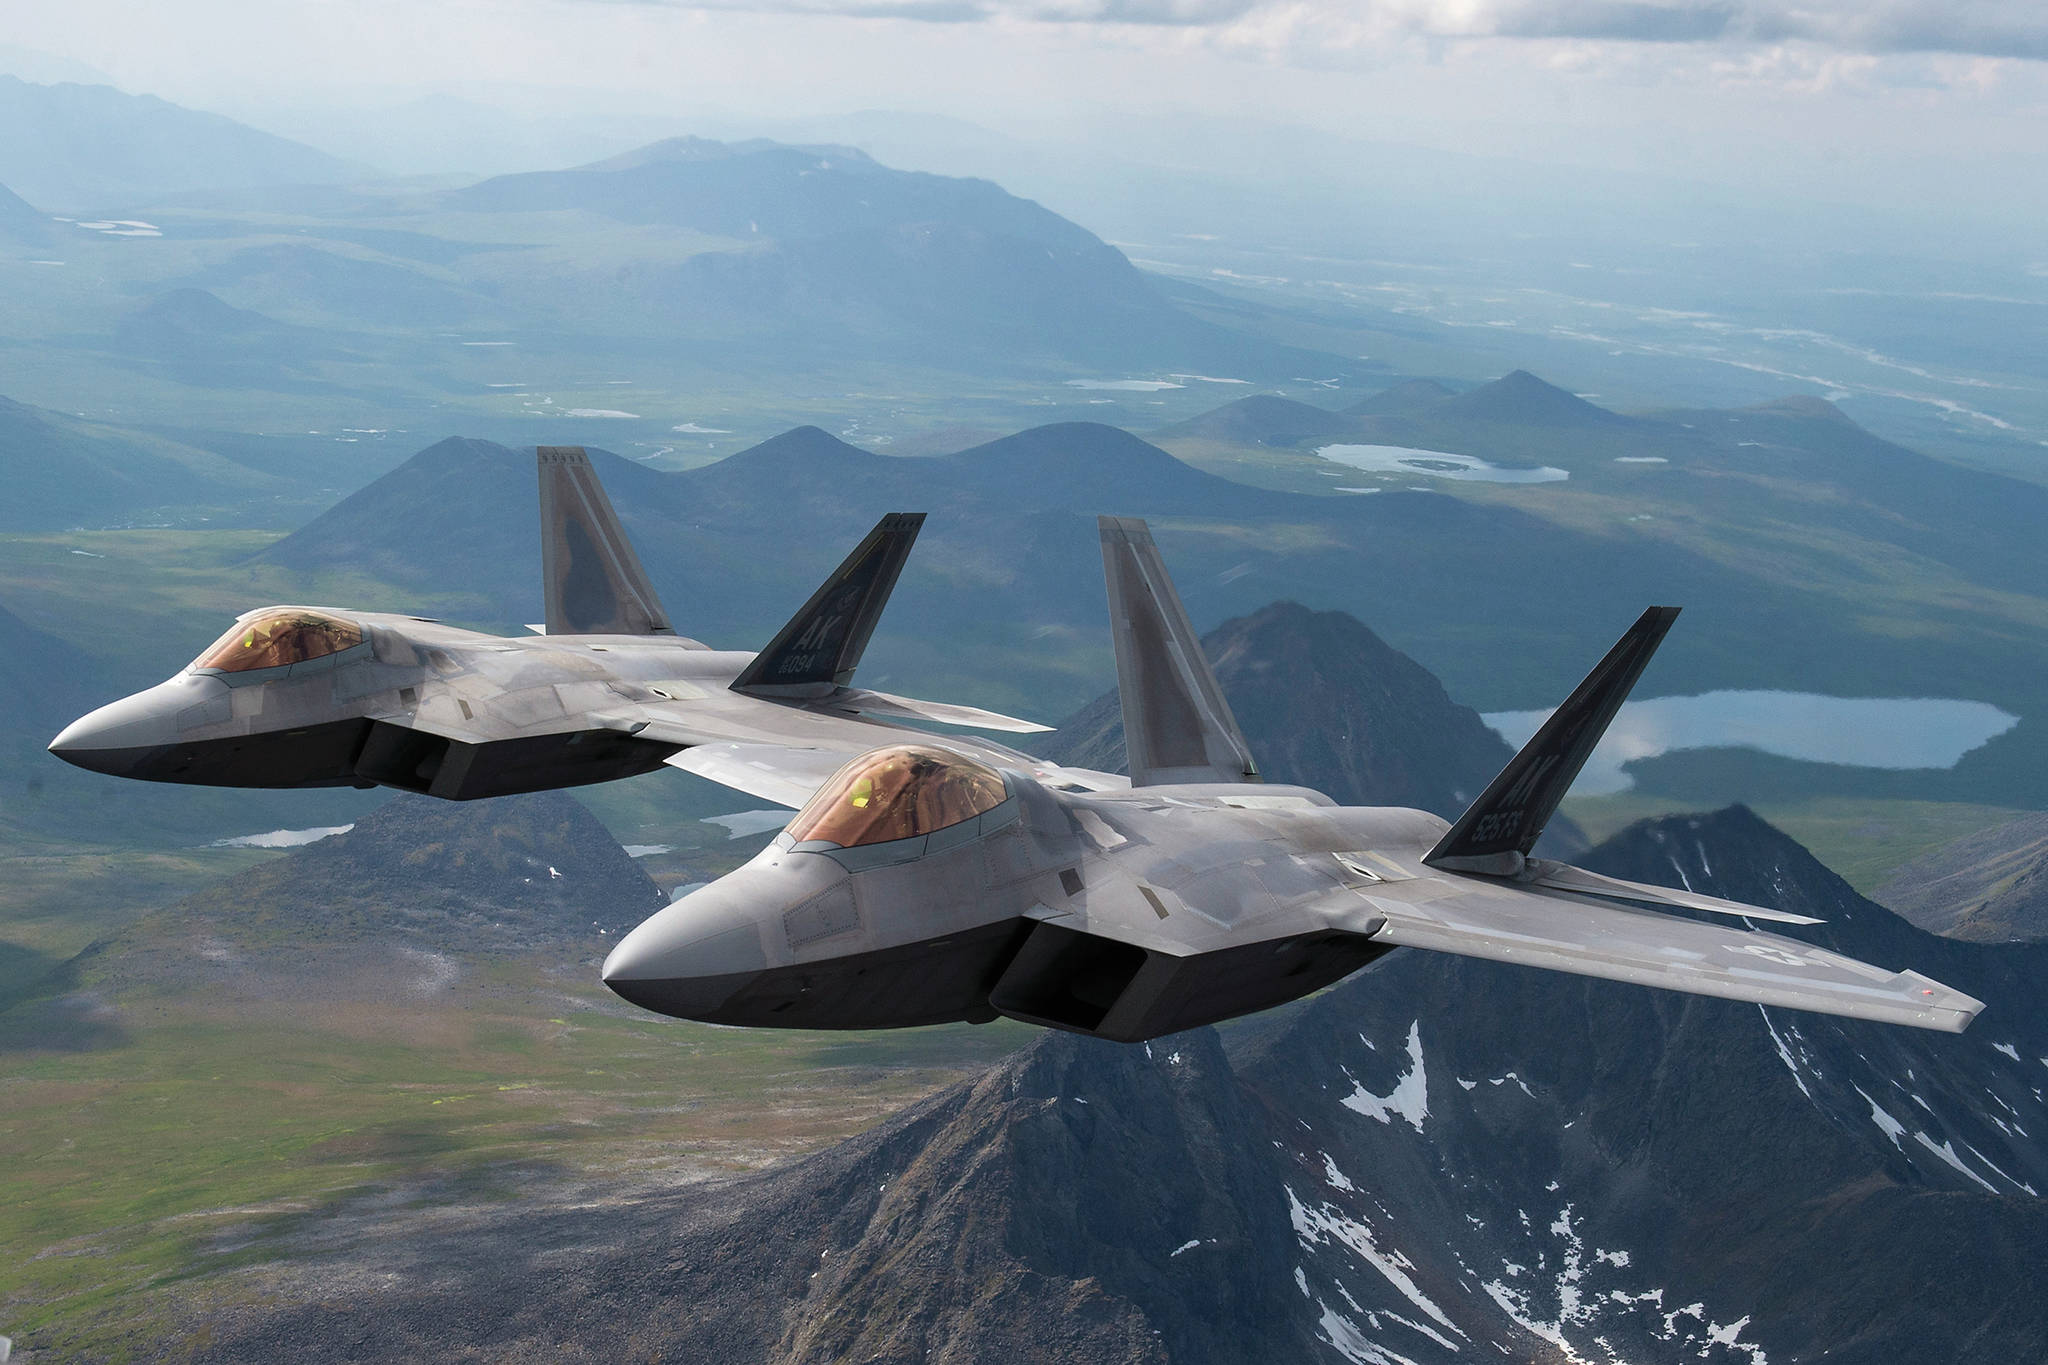 U.S. Air Force F-22 Raptors from Joint Base Elmendorf-Richardson, fly in formation over the Joint Pacific Alaska Range Complex on July 18, 2019. (U.S. Air Force photo by Staff Sgt. James Richardson)